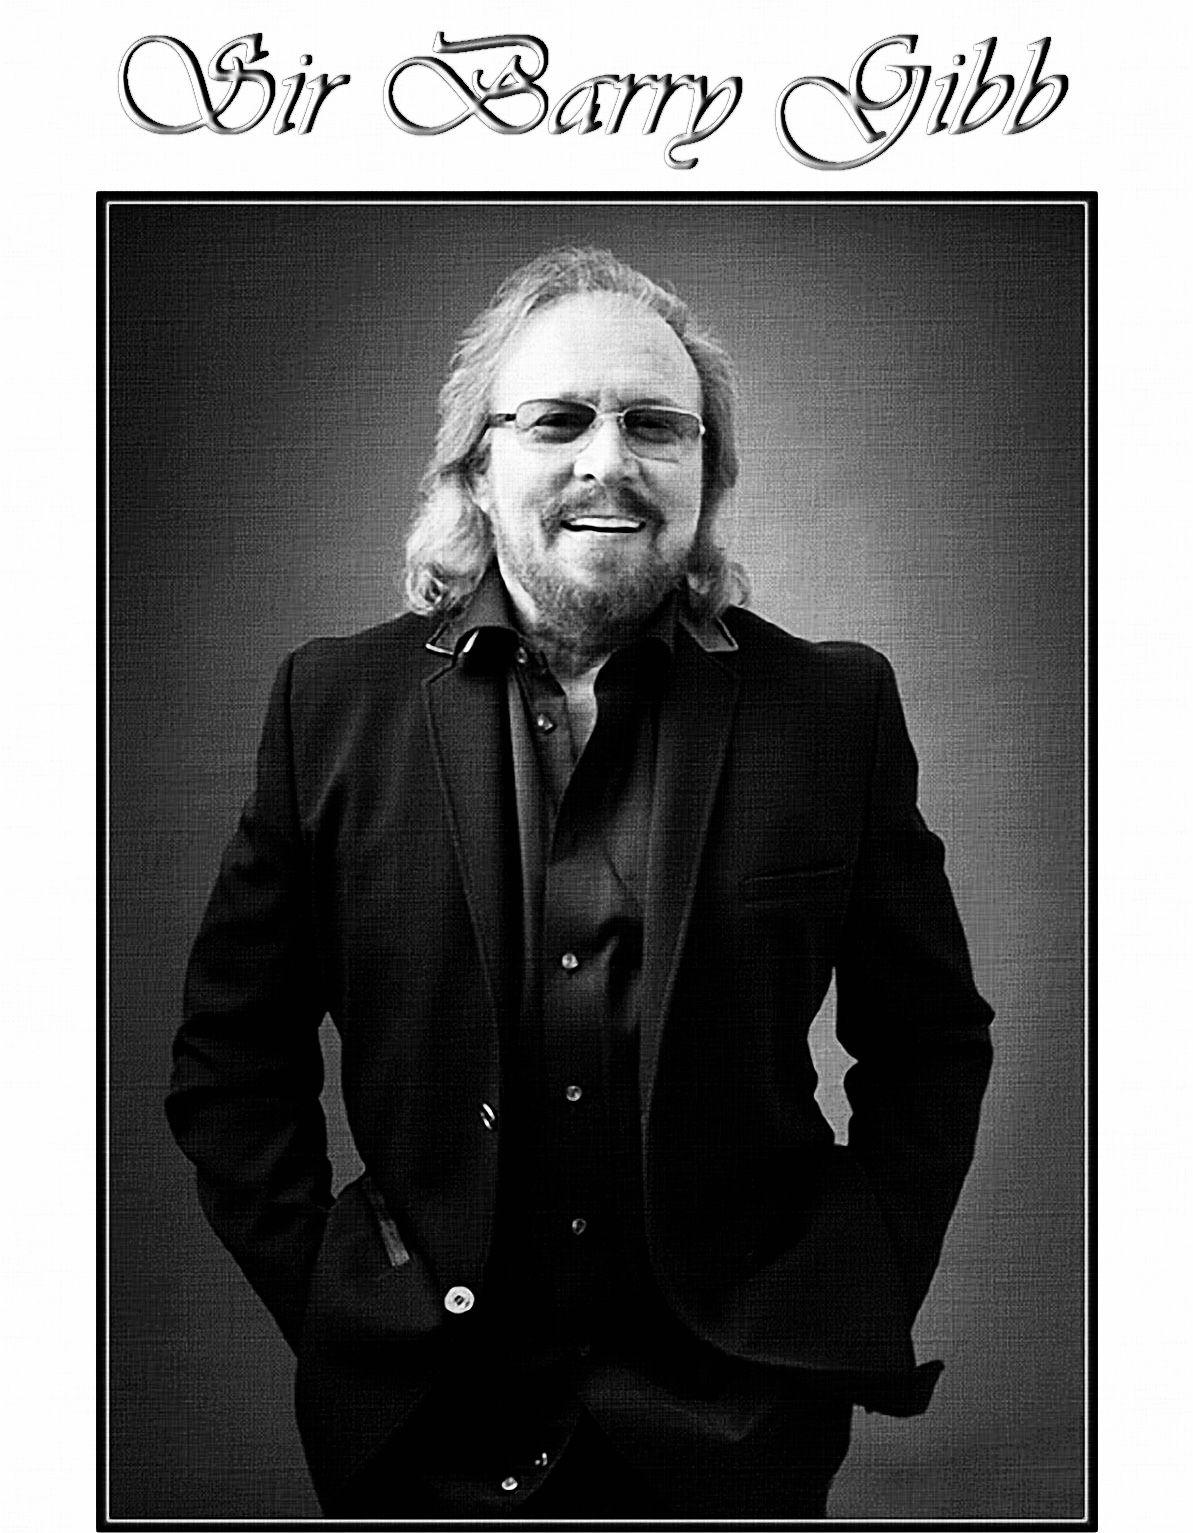 Pin by Randi Lazar Fishman on Barry Gibb New Moments in